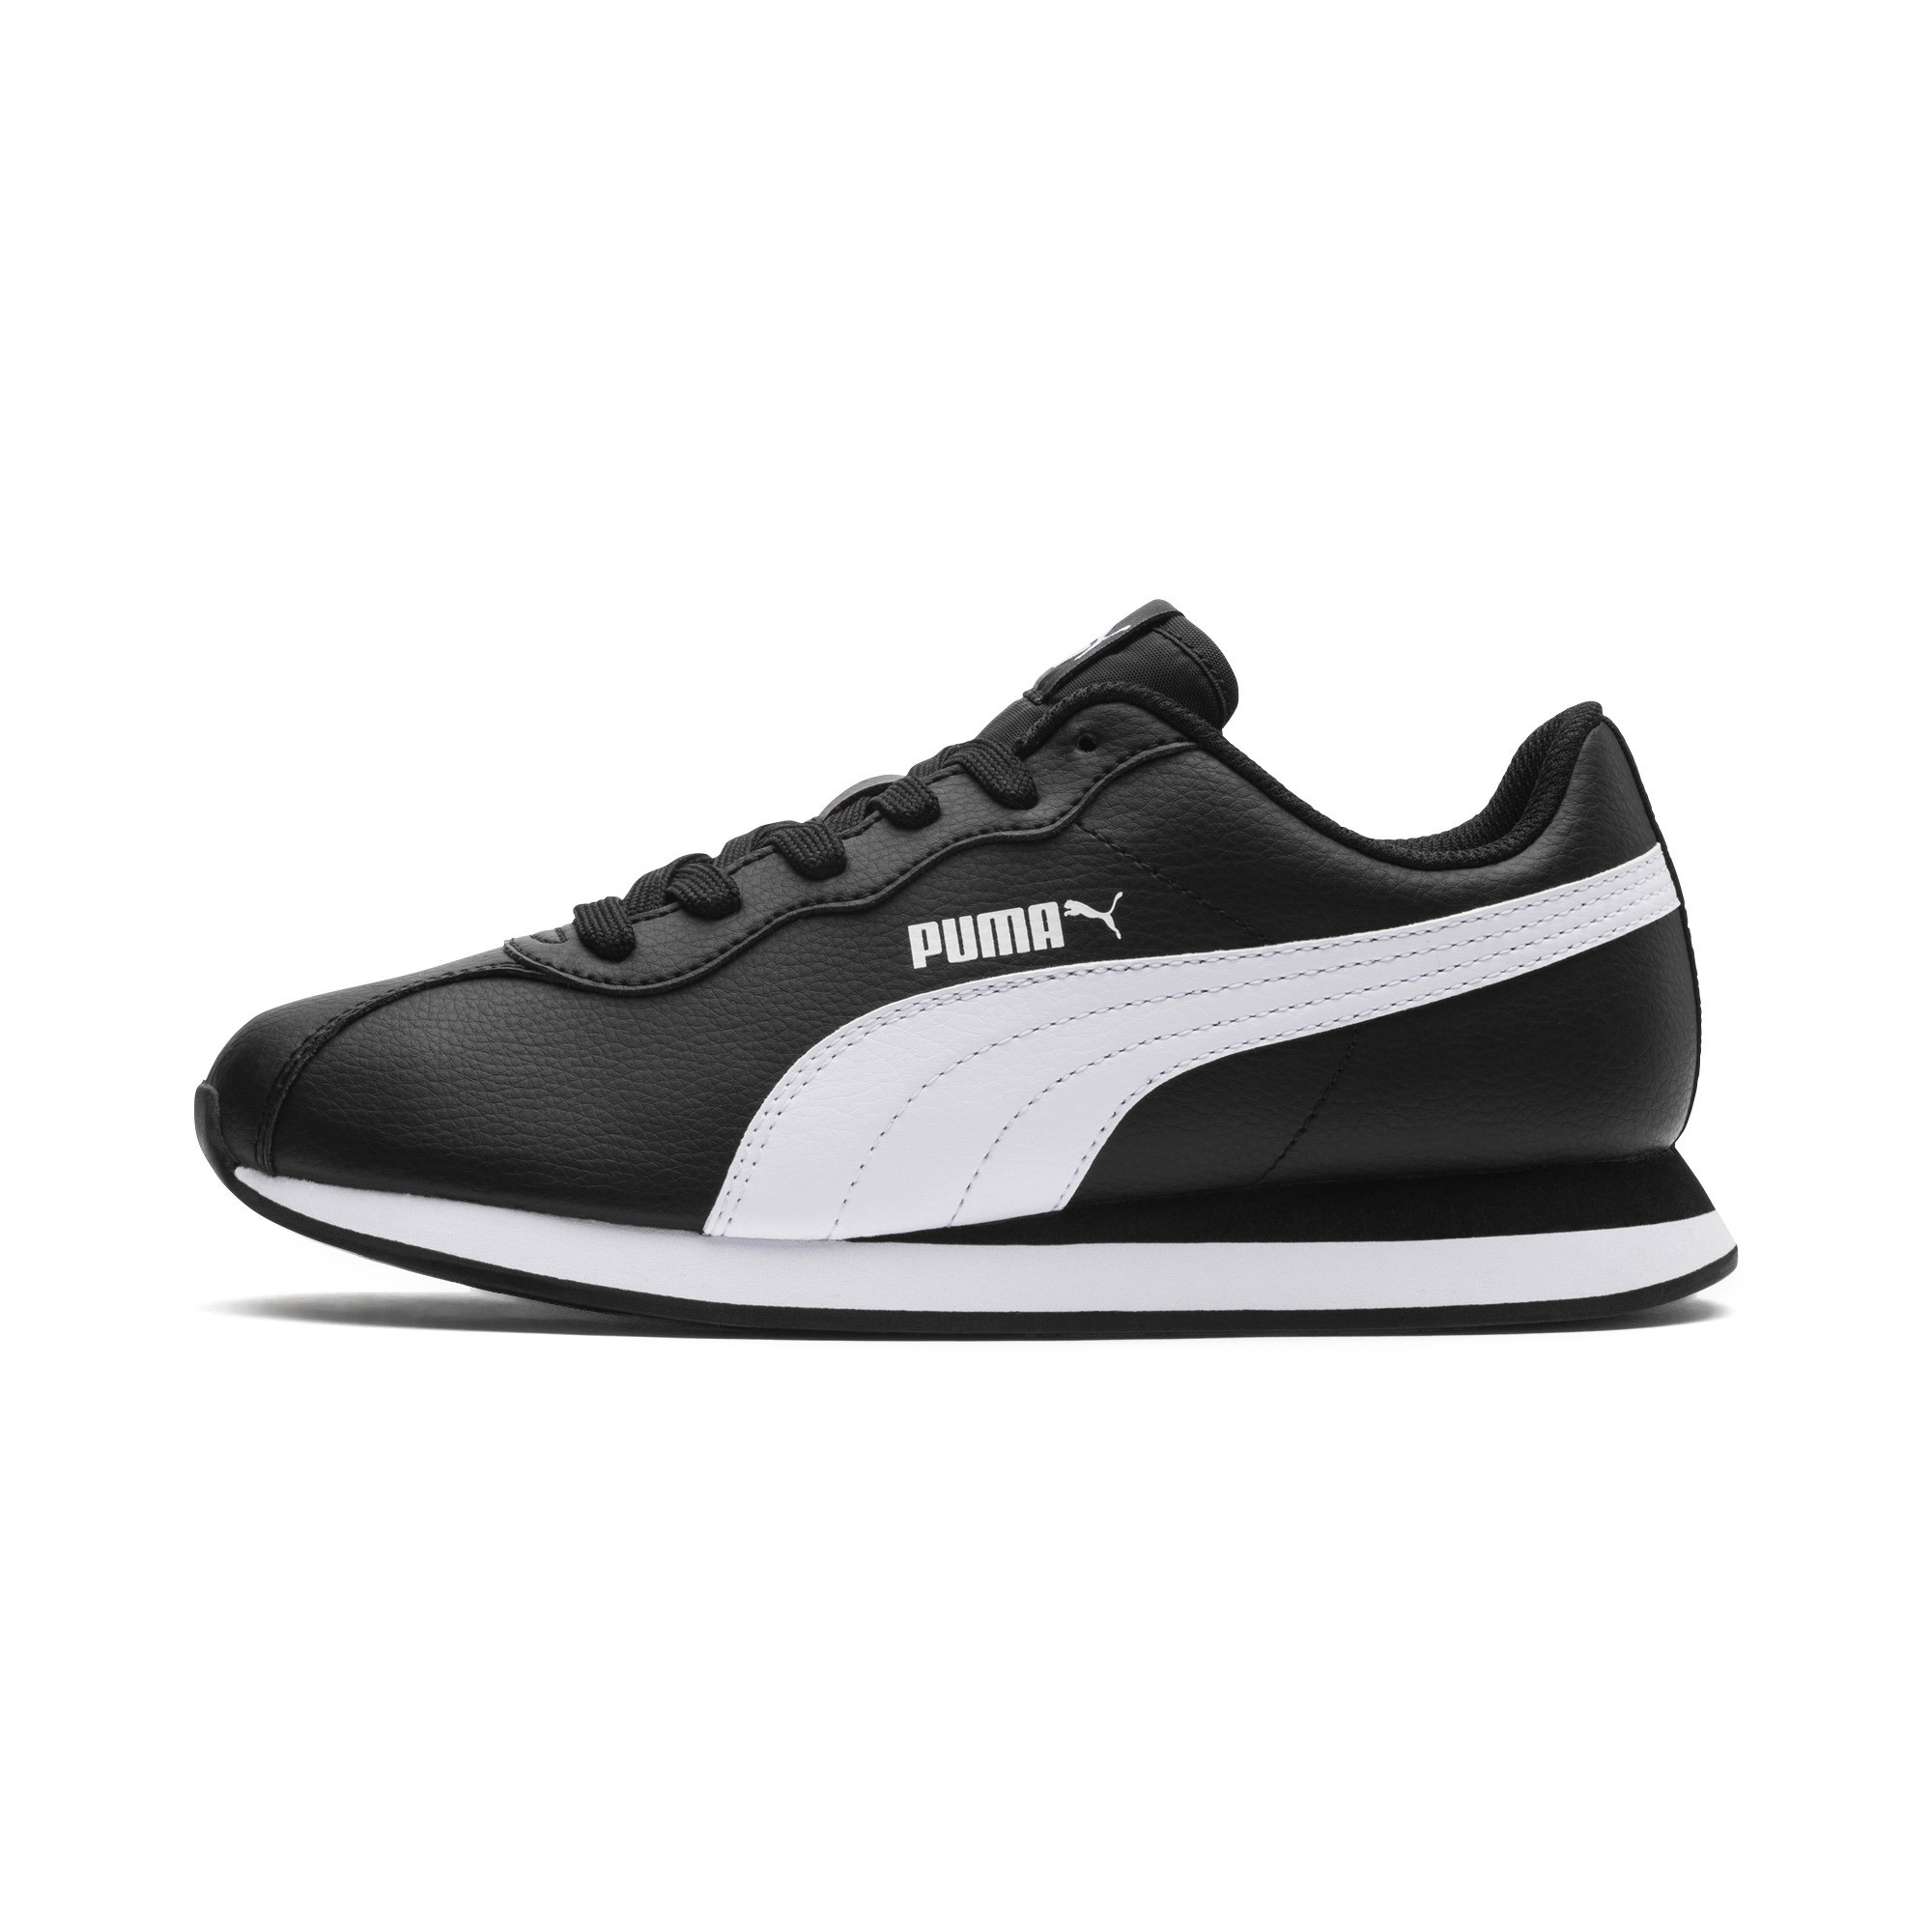 PUMA-Turin-II-Sneakers-JR-Kids-Shoe-Kids thumbnail 16